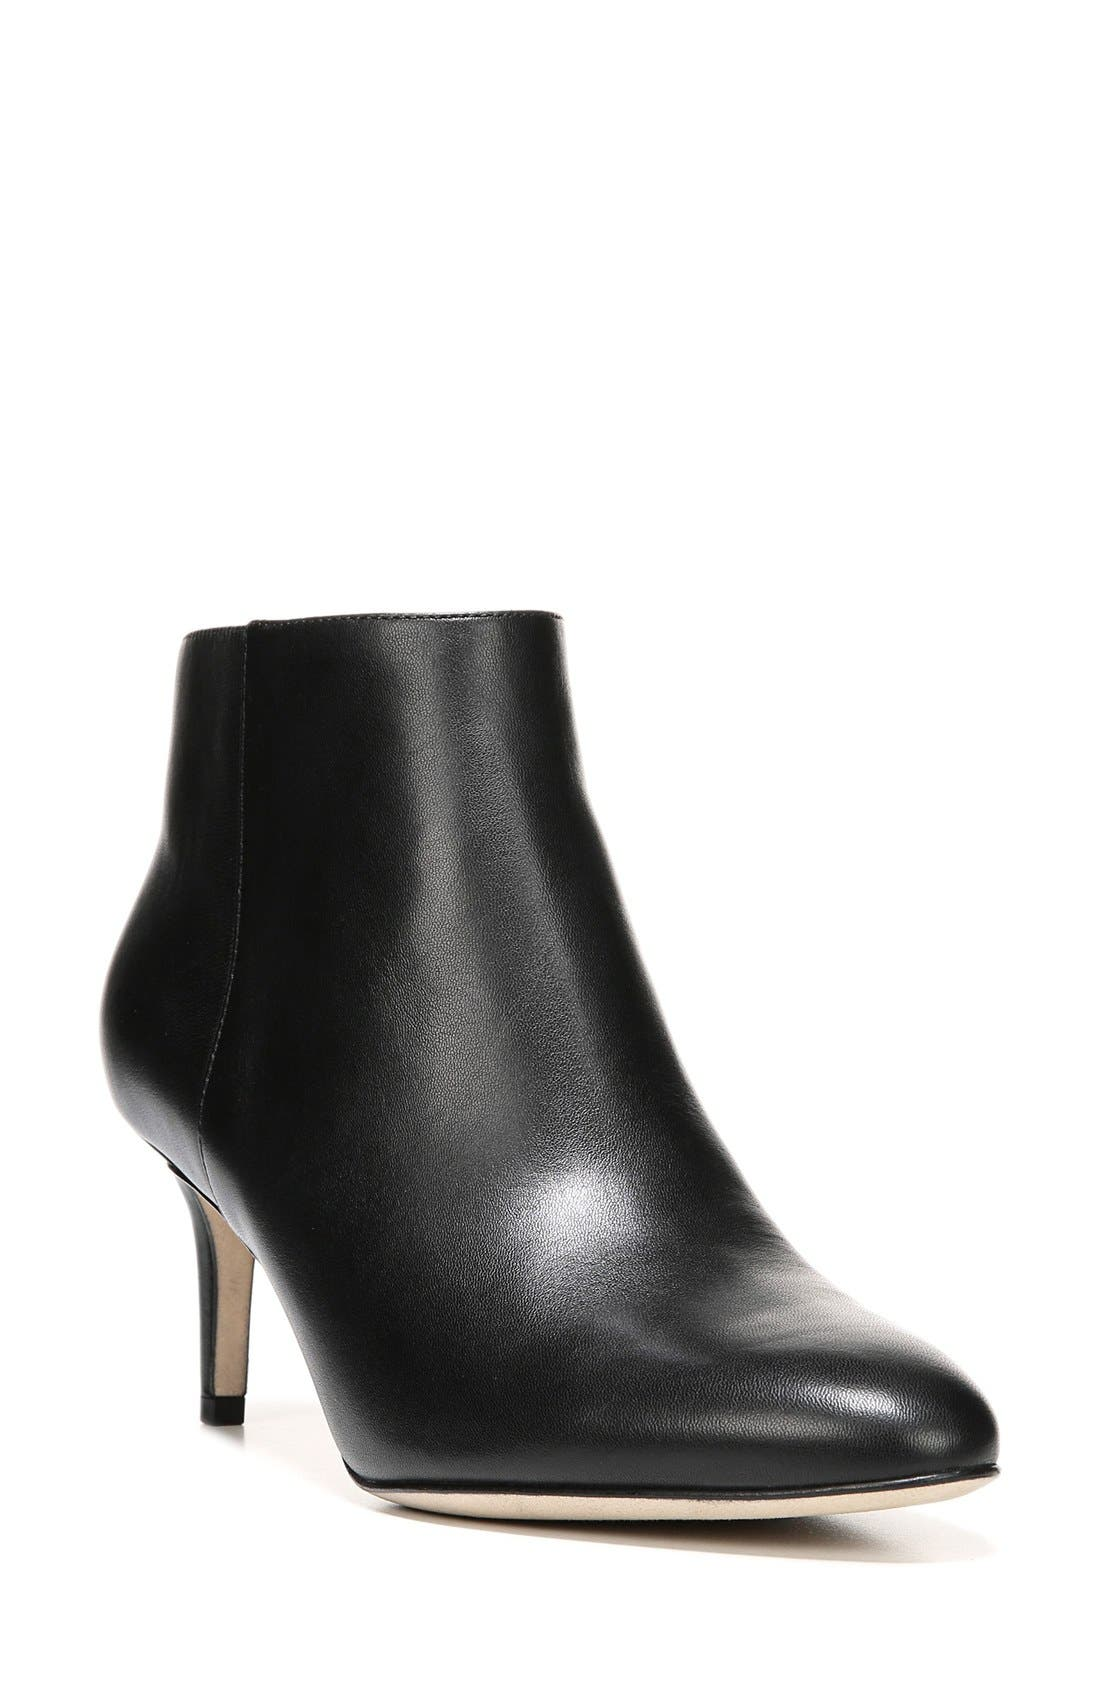 Alternate Image 1 Selected - Via Spiga 'Aurora' Bootie (Women)